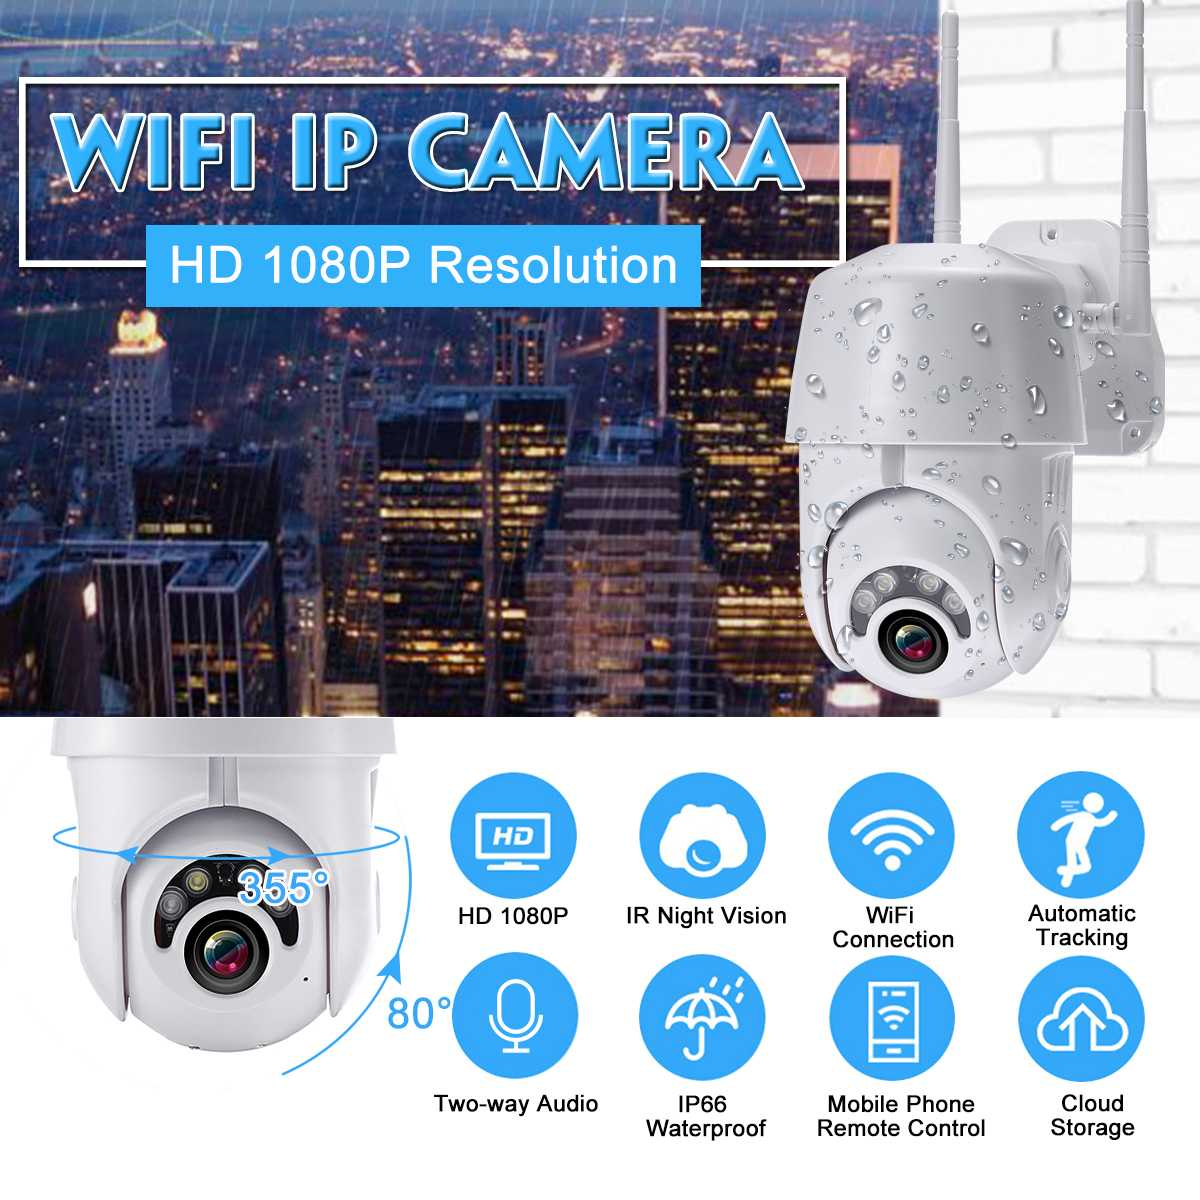 WIFI Camera Outdoor IP Camera H.264 1080p Speed Dome CCTV Security Cameras IP Camera WIFI Exterior 2MP IR Home Surveilance